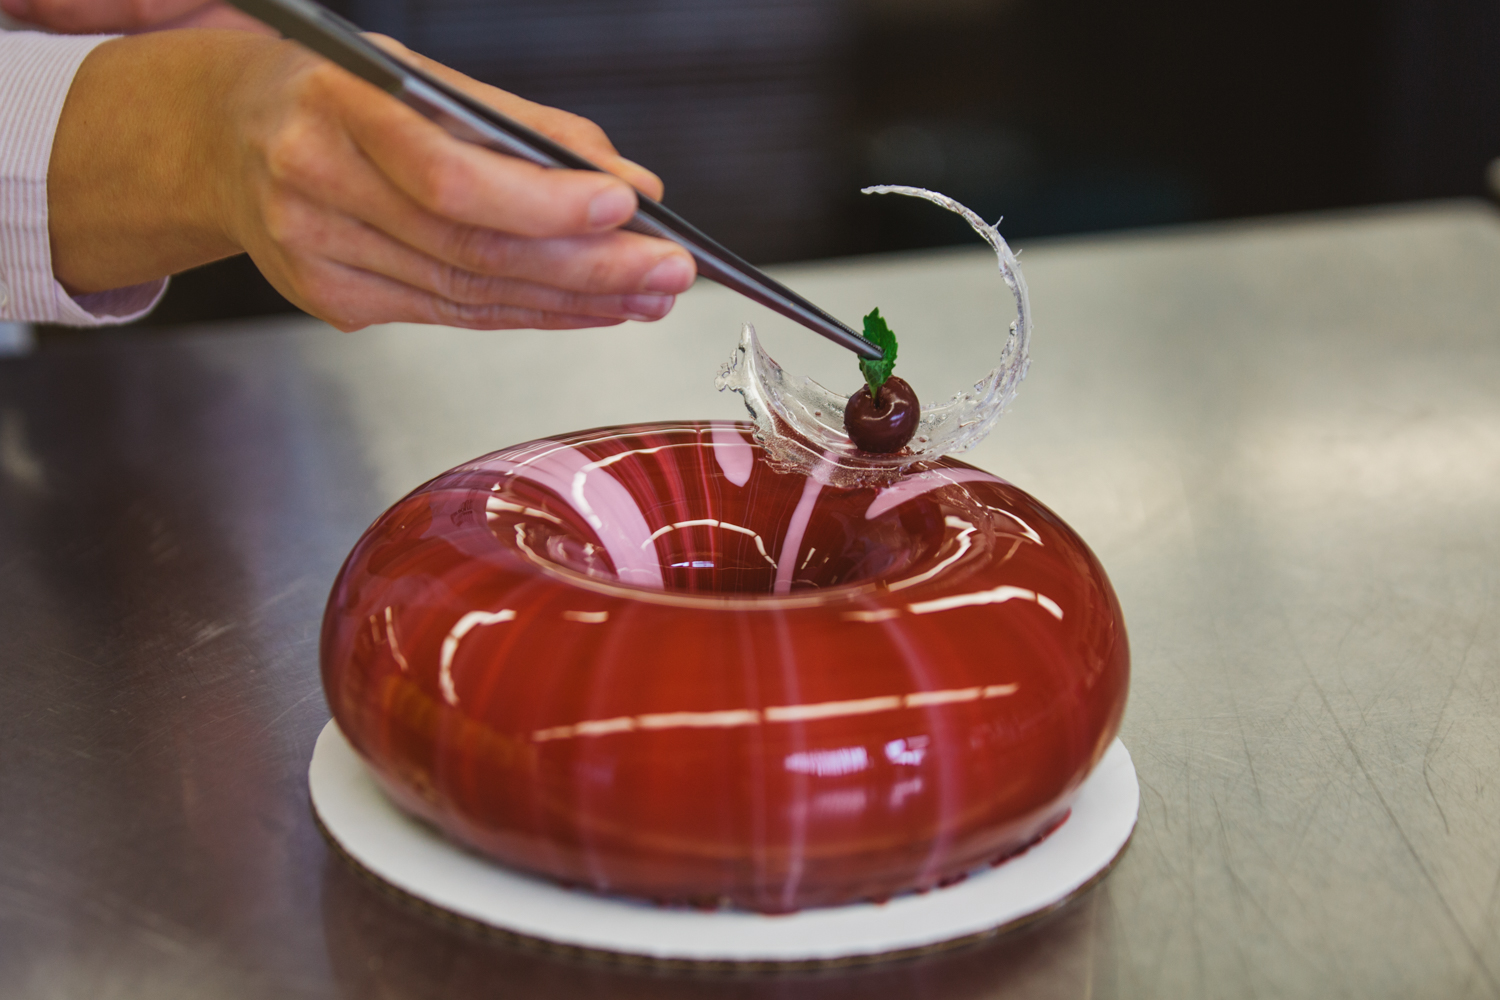 Slowly and delicately poured over delicious mousse cakes, mirror glazing takes cake aesthetic to a whole new level. At Mousse Boutique, Anastasia{ }Stratulat is a master as she carefully designs beautiful edible art pieces through her high quality minimalist designs. (Image: Ryan McBoyle / Seattle Refined)